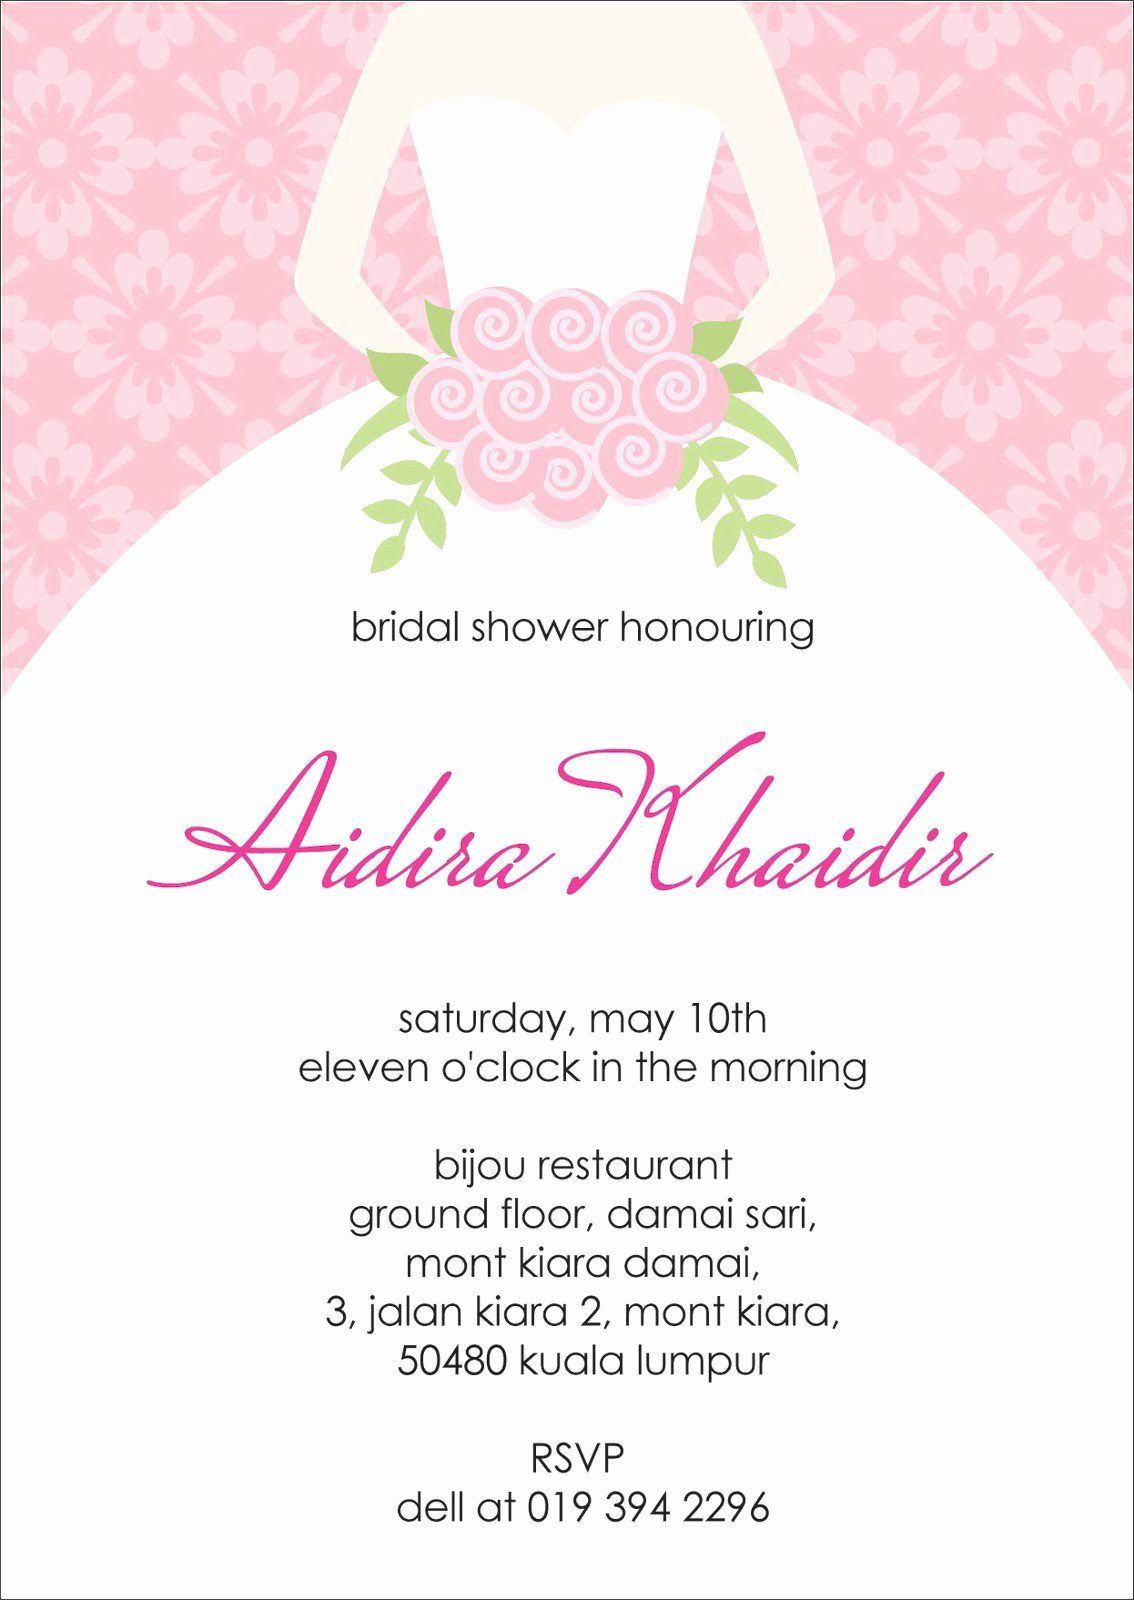 Bridal Shower Invitation Template Free Beautiful Bridal Shower Invitations Bridal Shower Invitation